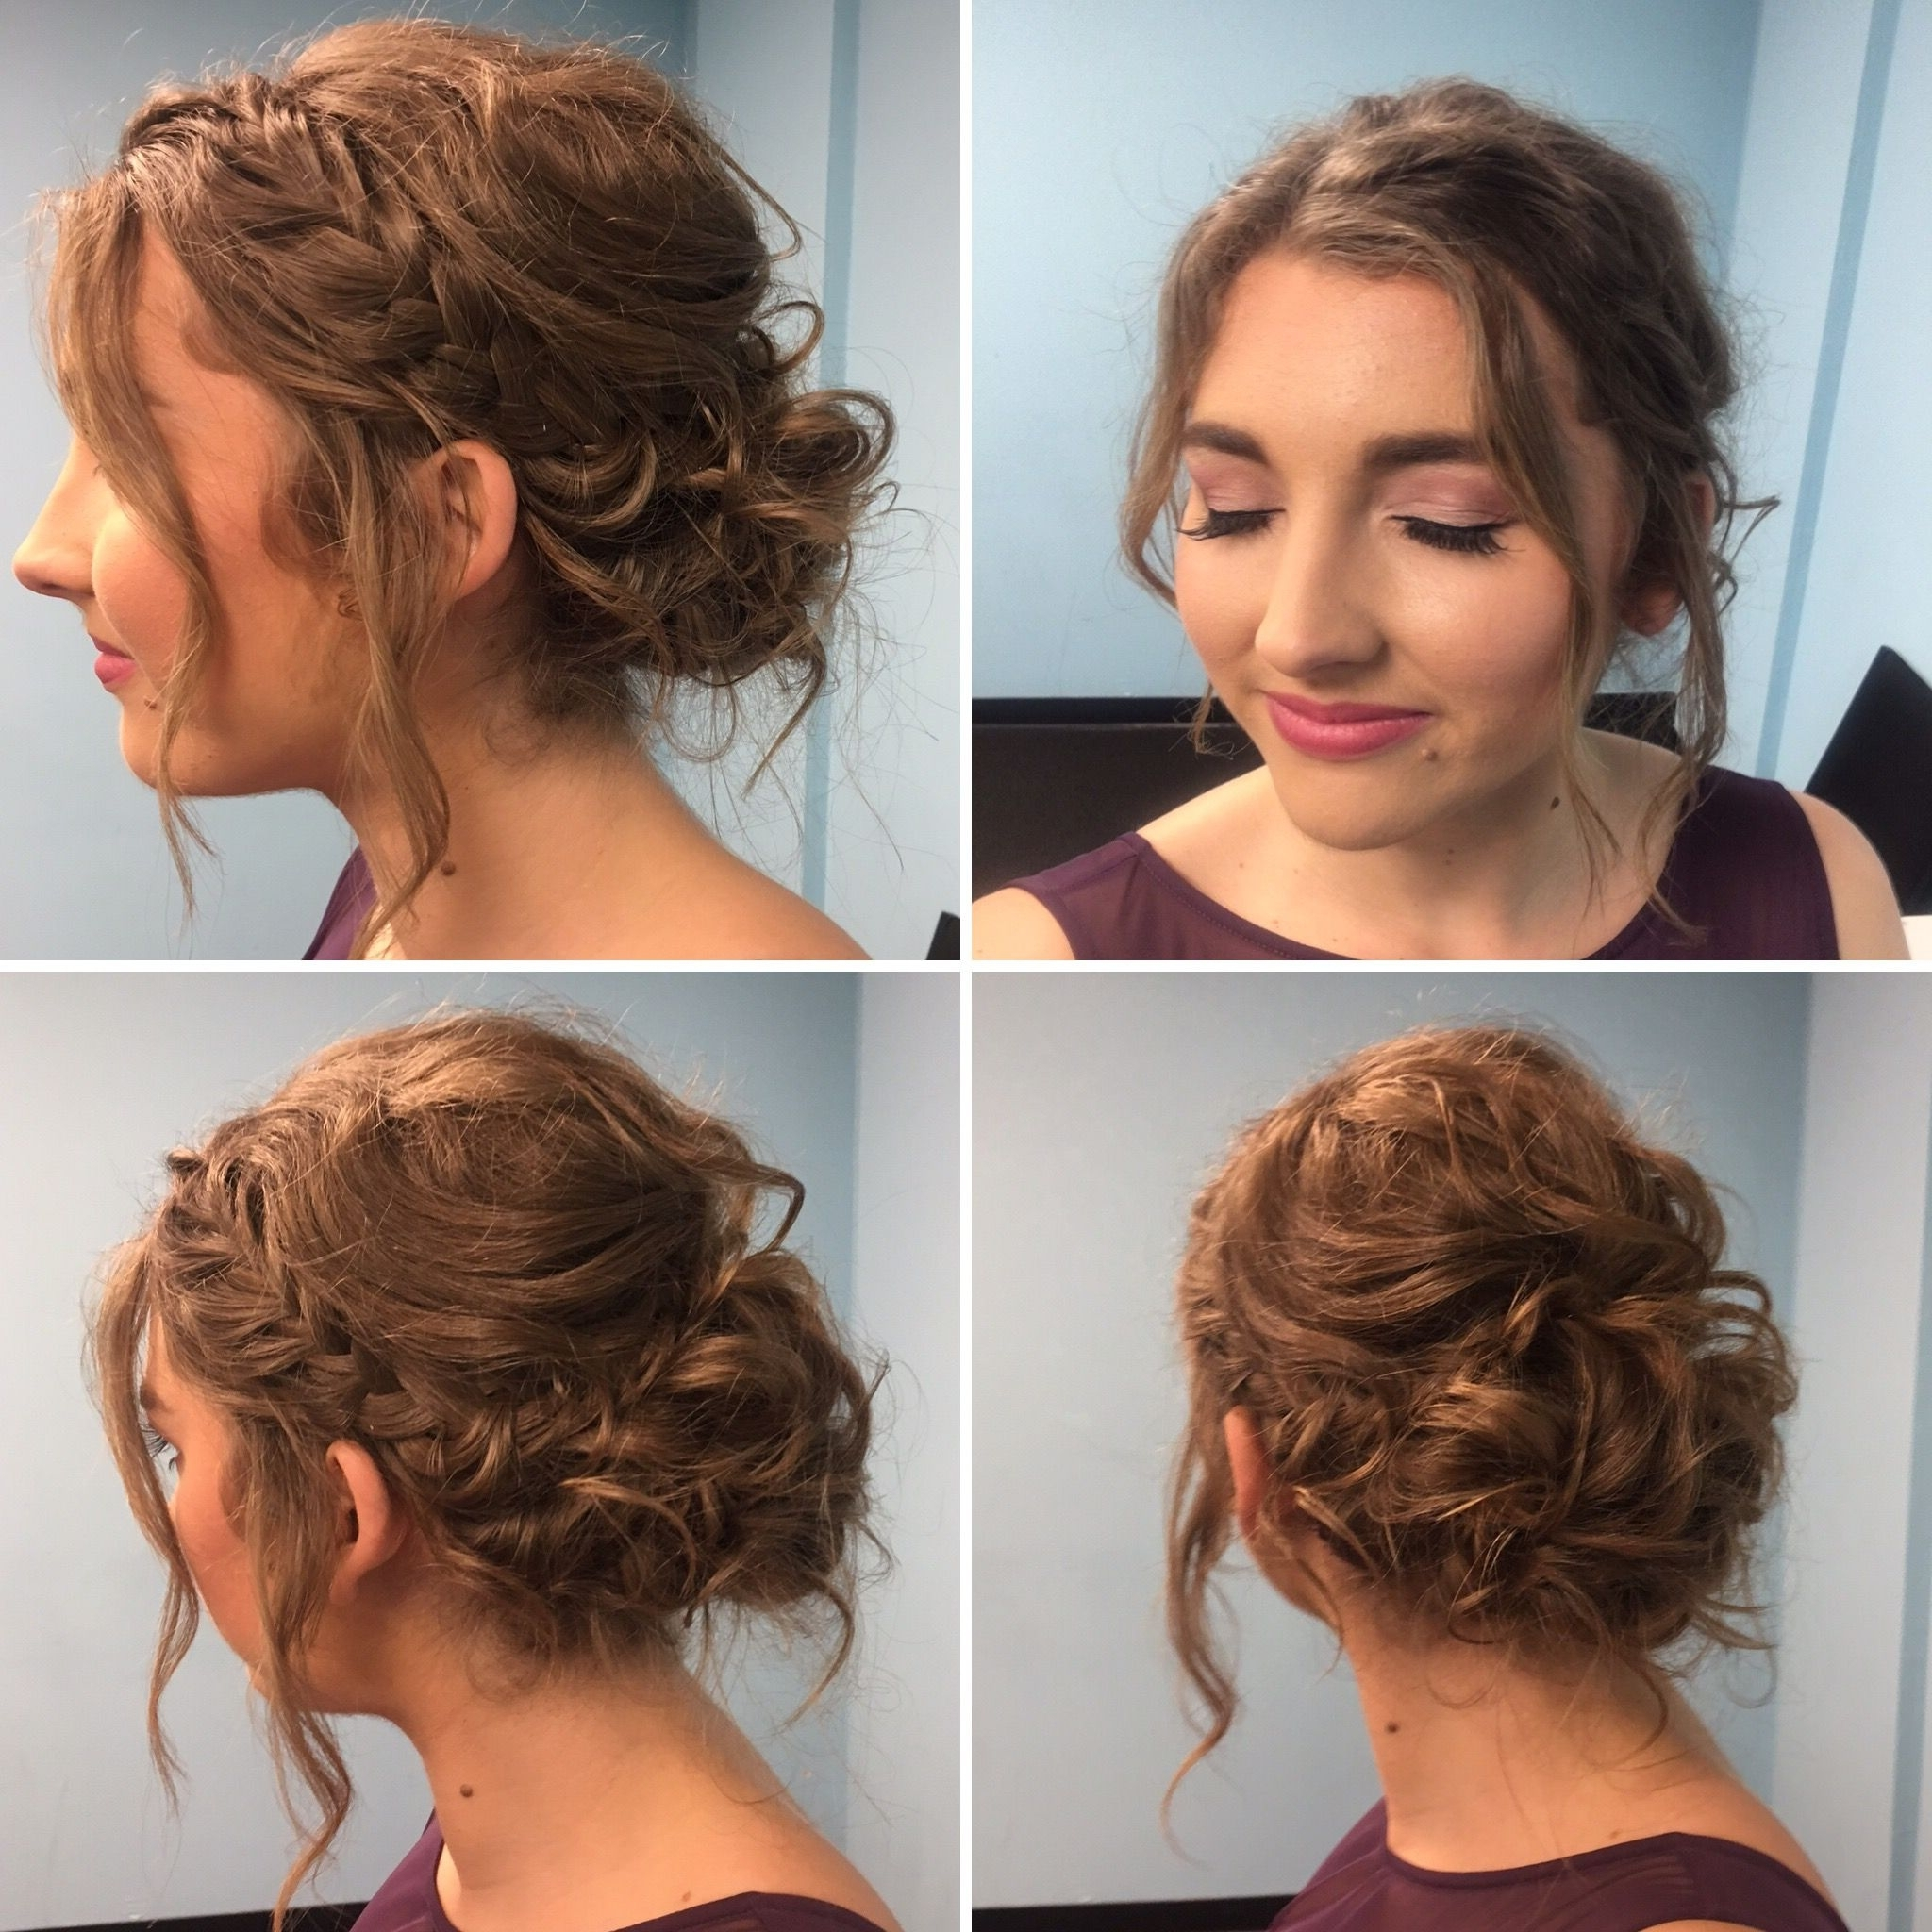 Widely Used Wedding Hairstyles For Short To Mid Length Hair Regarding Bridesmaid Hair. Short Hair Updo. Bridesmaid Makeup (View 14 of 15)